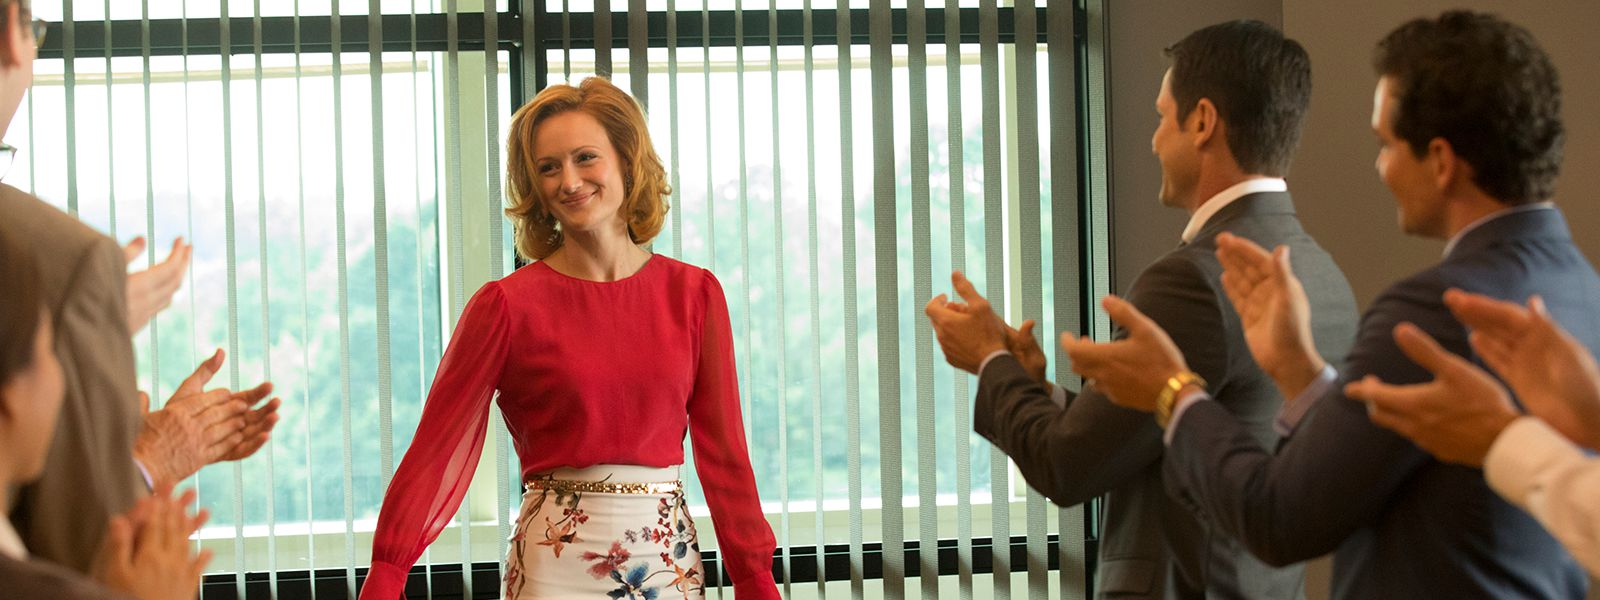 halt-and-catch-fire-episode-409-donna-bishe-post-hero-800×600